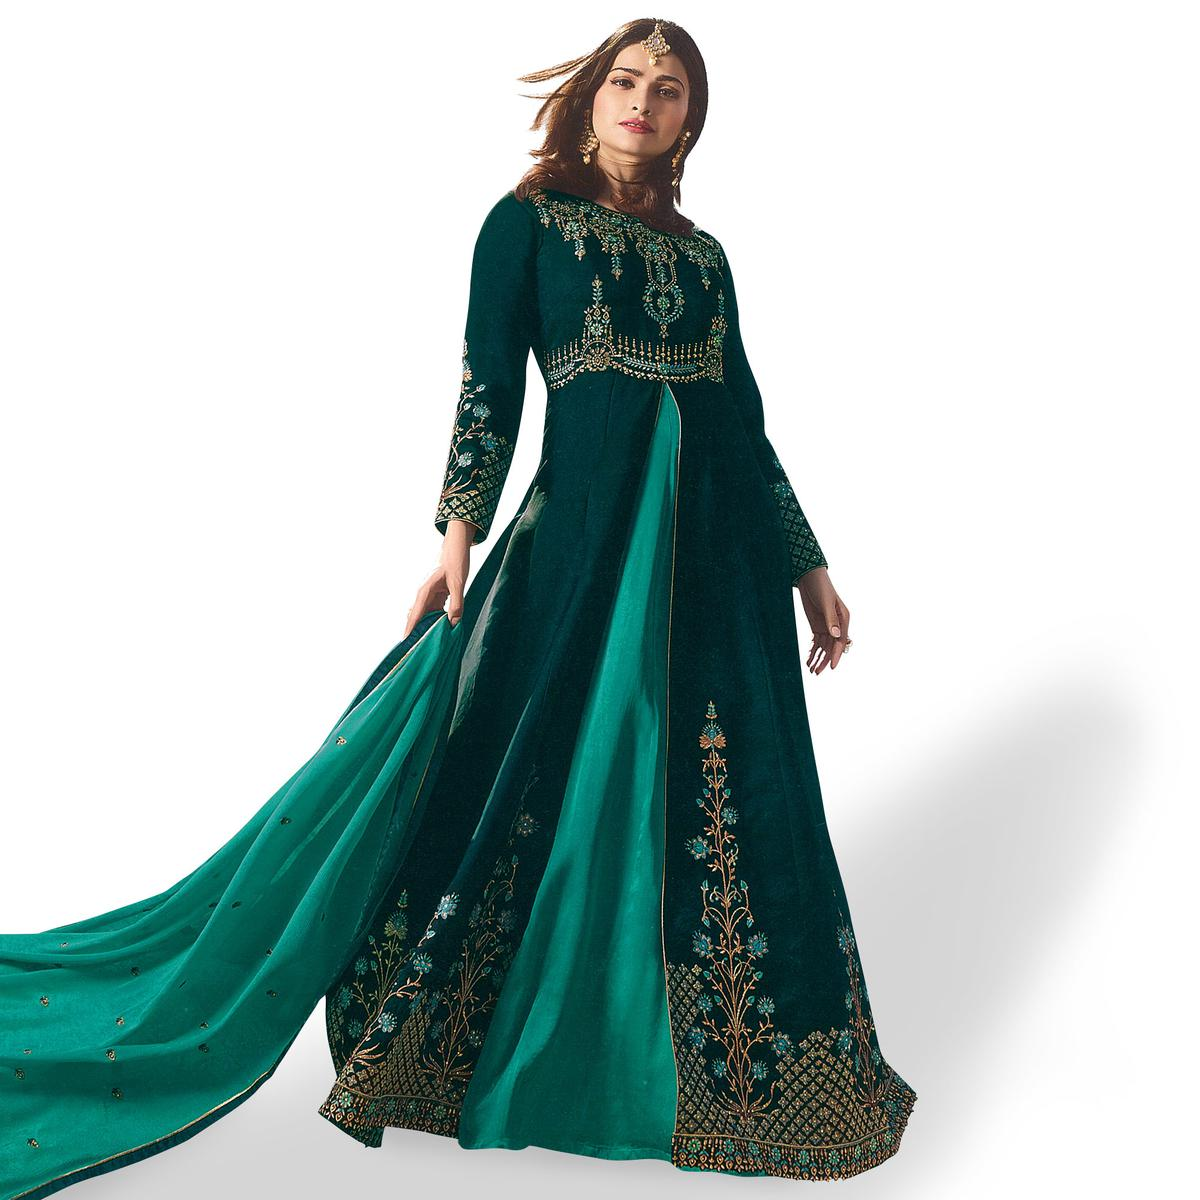 Demanding Dark Teal Green Colored Party Wear Embroidered Georgette Anarkali Suit